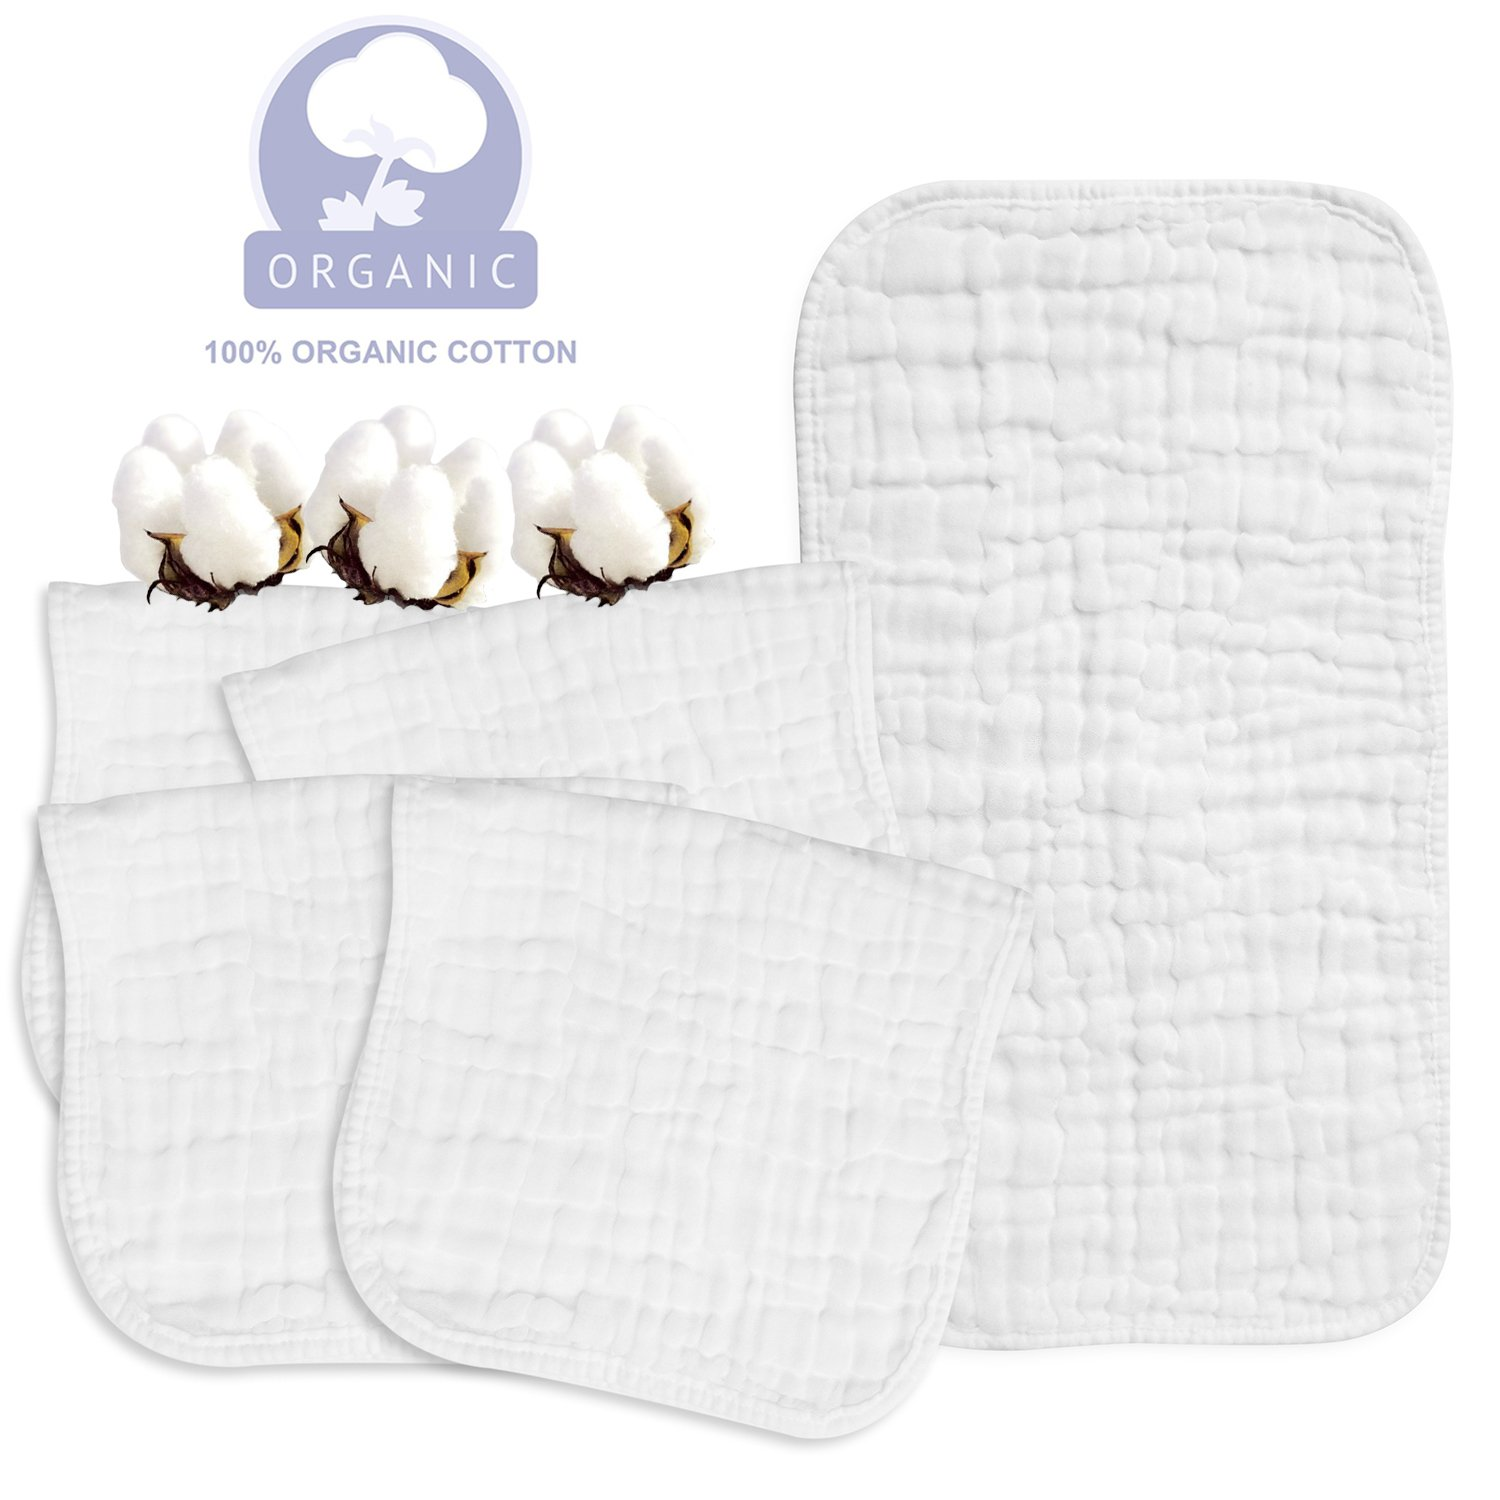 Muslin Burp Cloths Made from 100% Cotton,Saliva Towel,Multi-Use Soft Burp Cloths Boys/Girls - Excellent Shower Gift,White Set, 5 Pack, Large 20